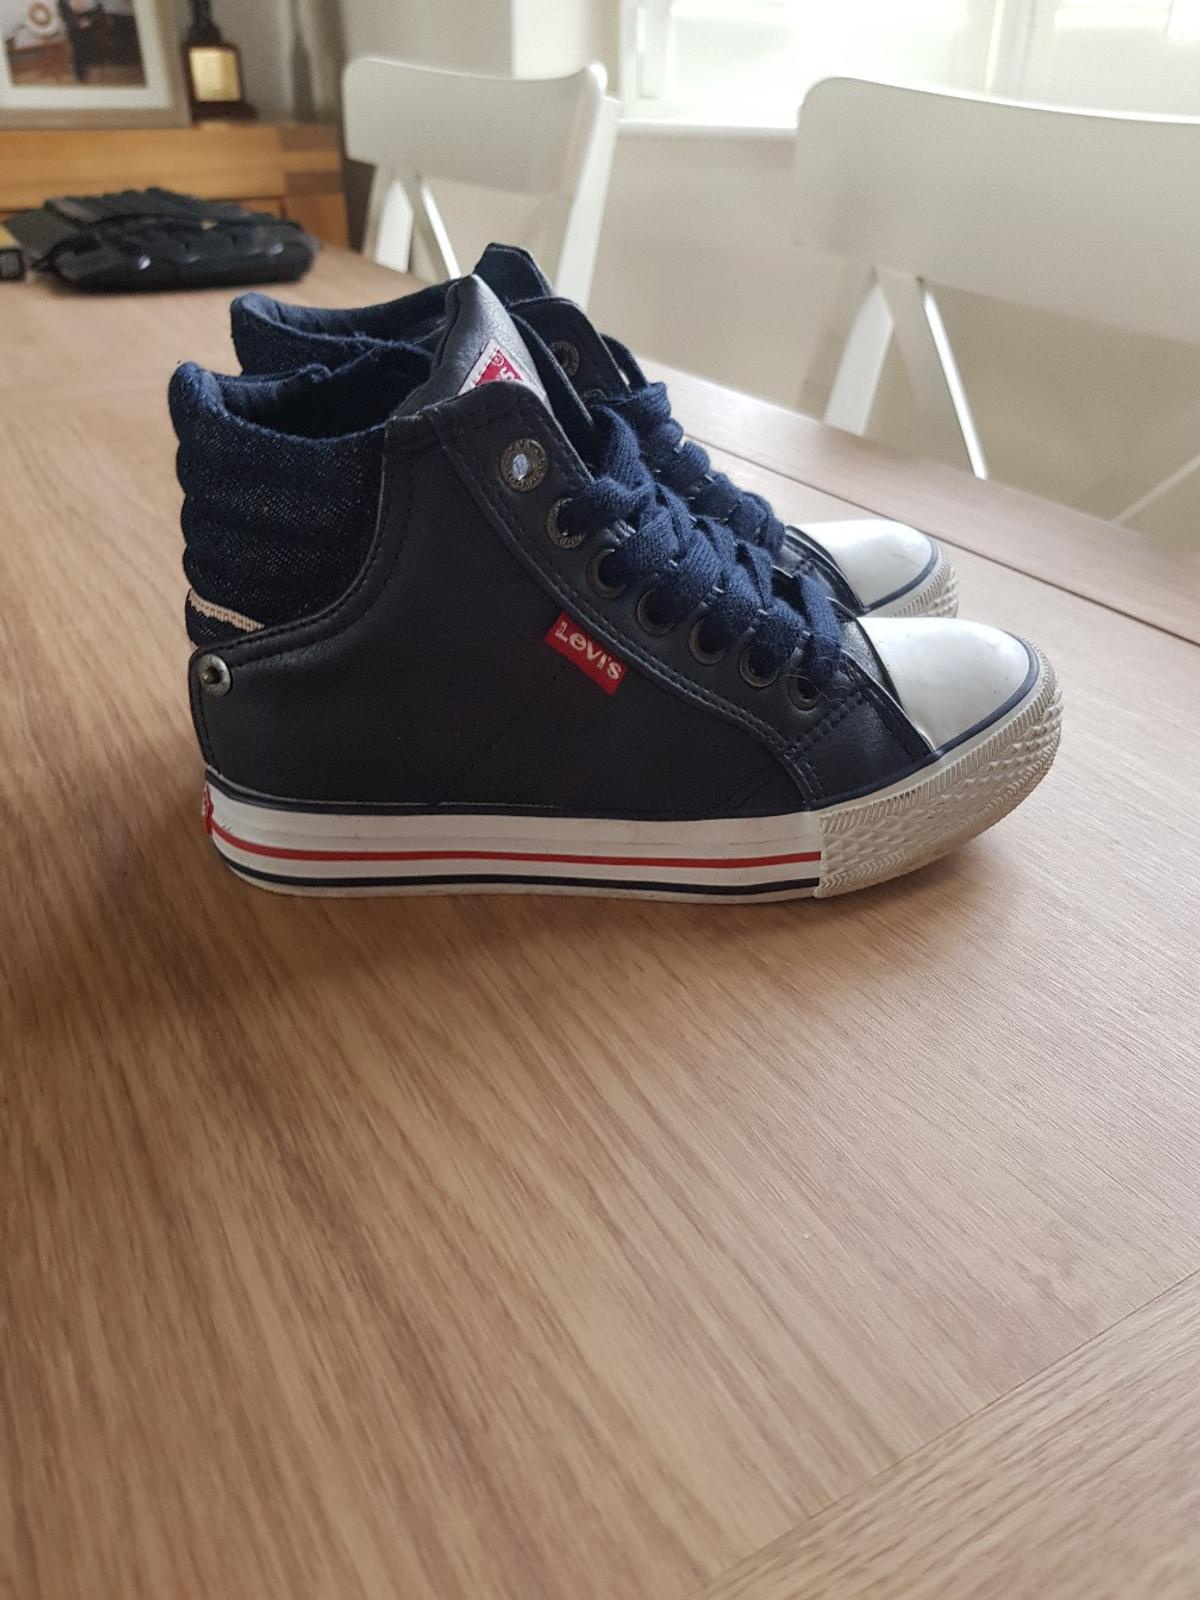 size 13.5 definitely fit a 13  These look really smart on hardly worn, too small for my boy now